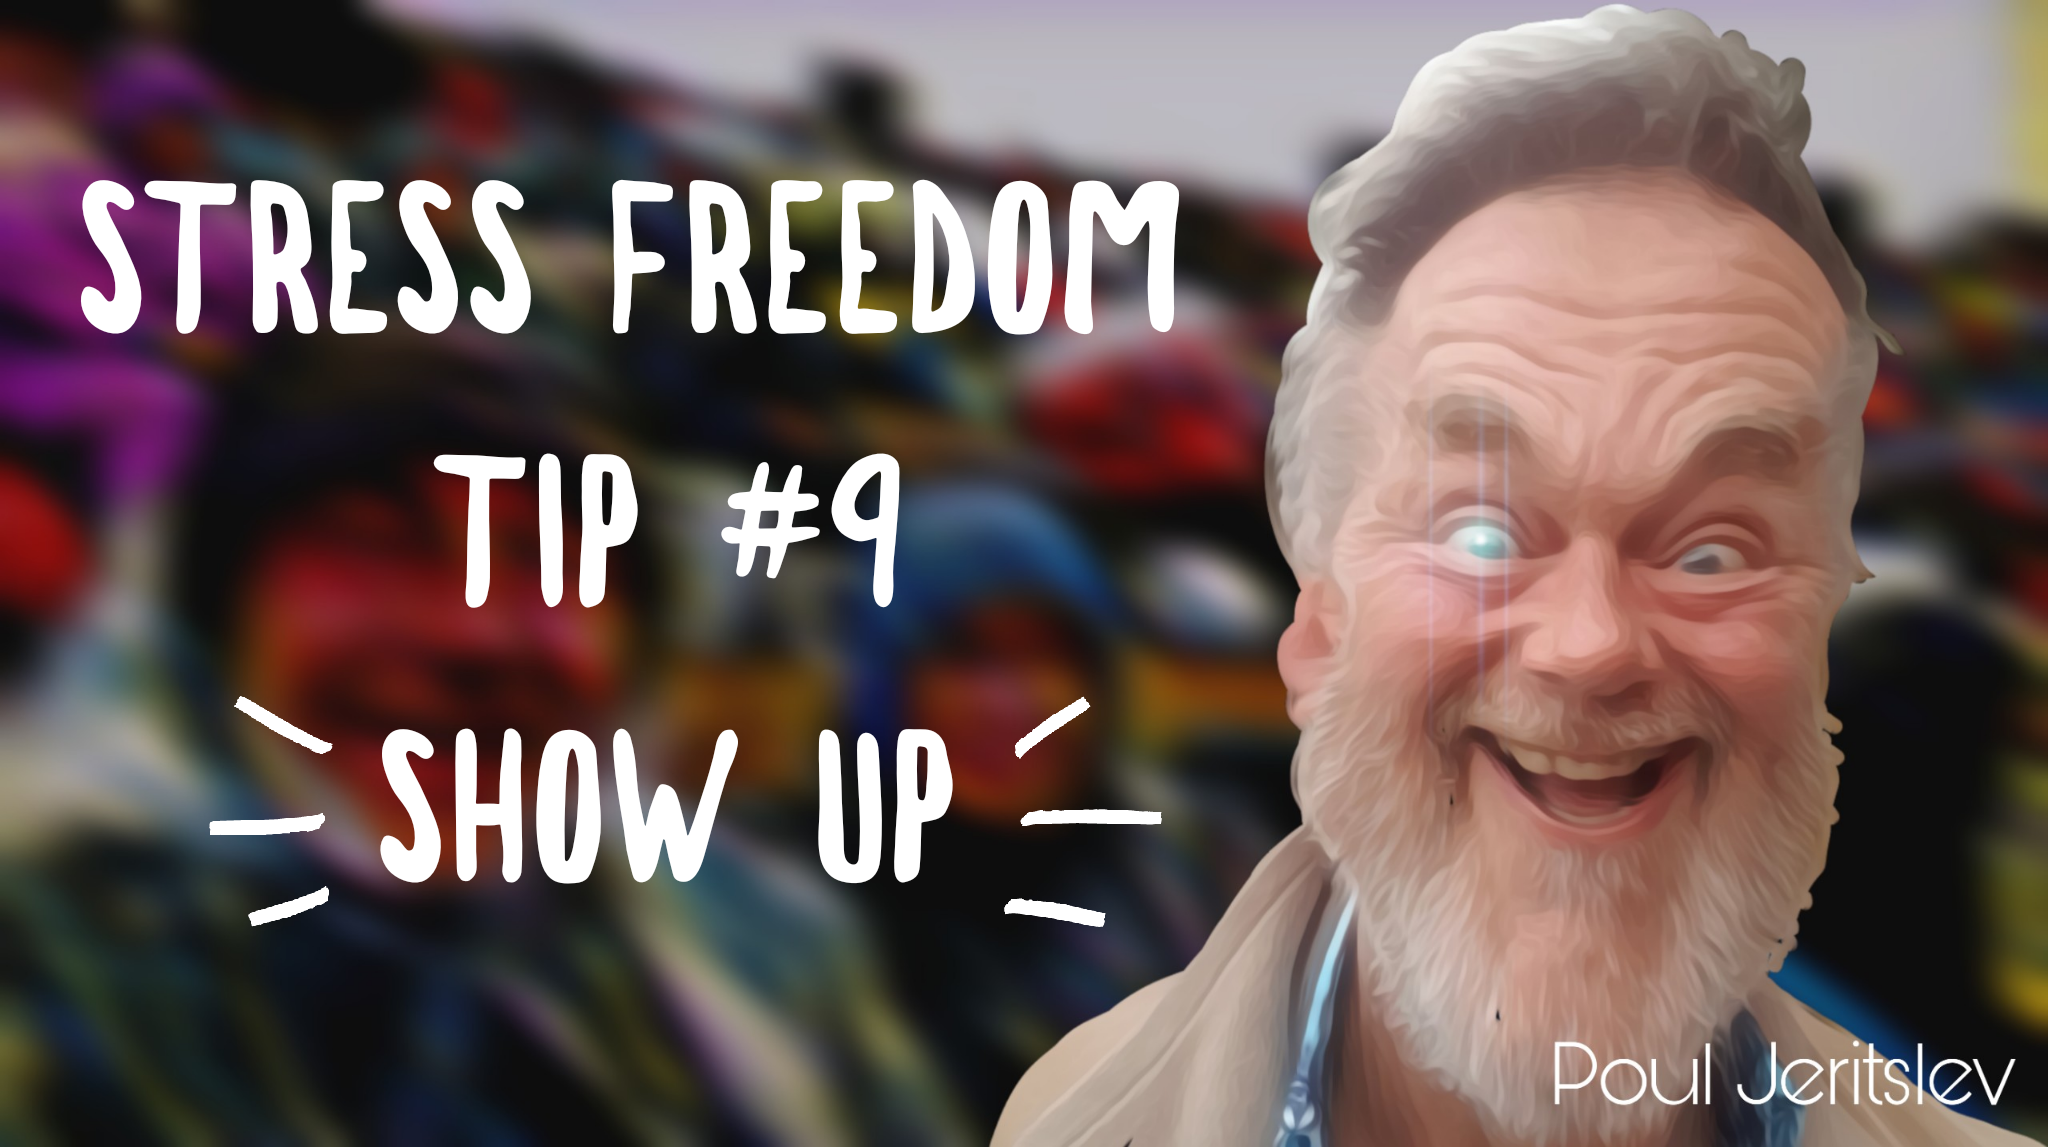 Stress Freedom TIP #9